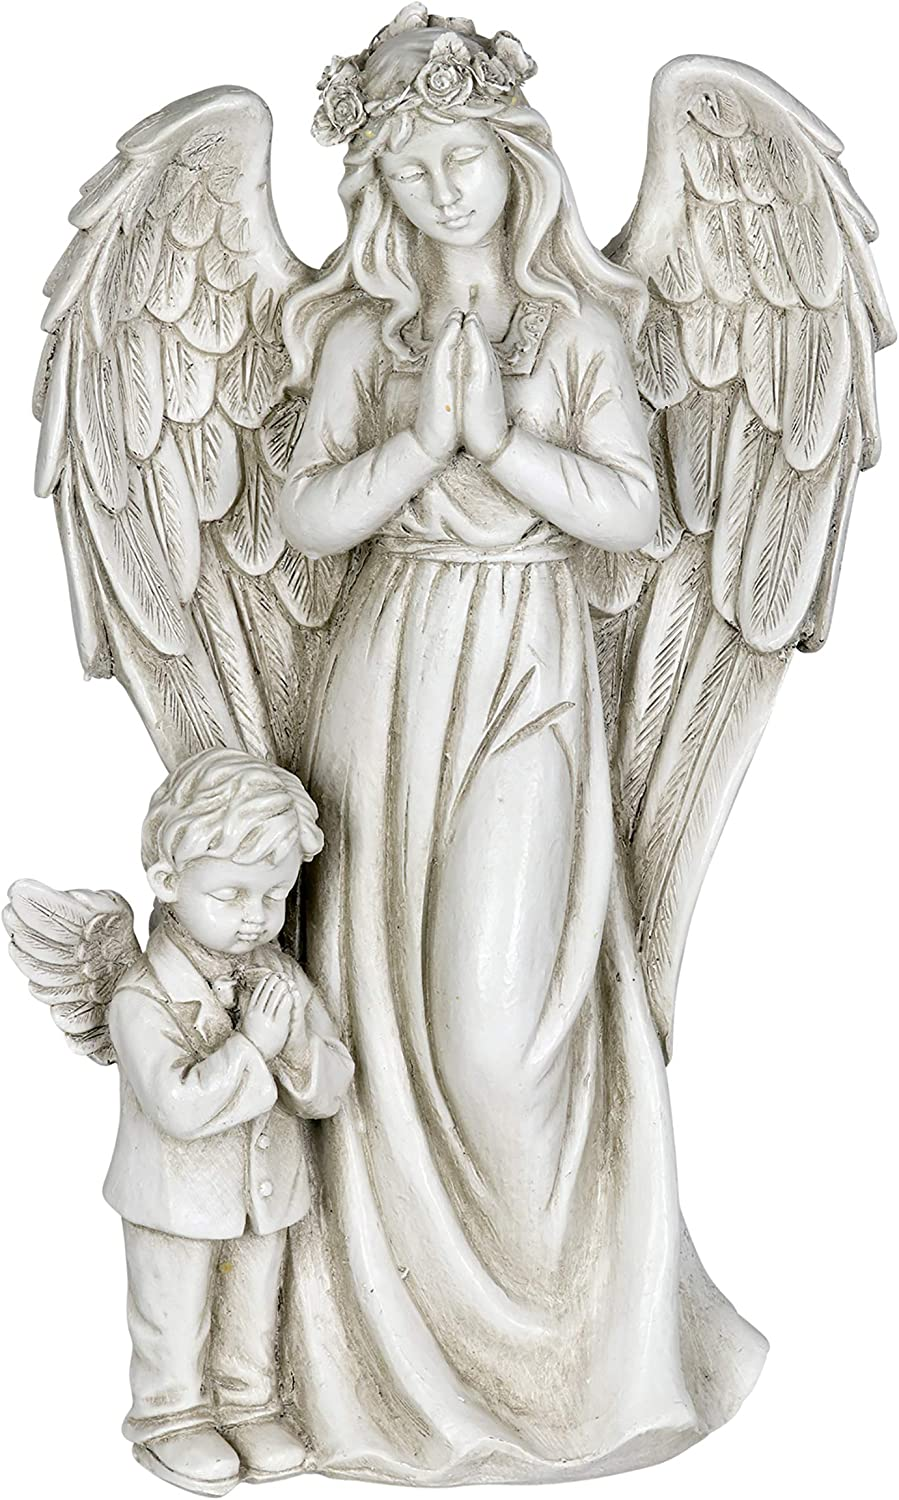 "Exhart Angel Garden Statue with Little Boy – Light Up Resin Angel Figurines Feature Battery-Powered LED Lights Timer - Angel Resin Statues, Memorial Decoration 8"" W x 14"" H"